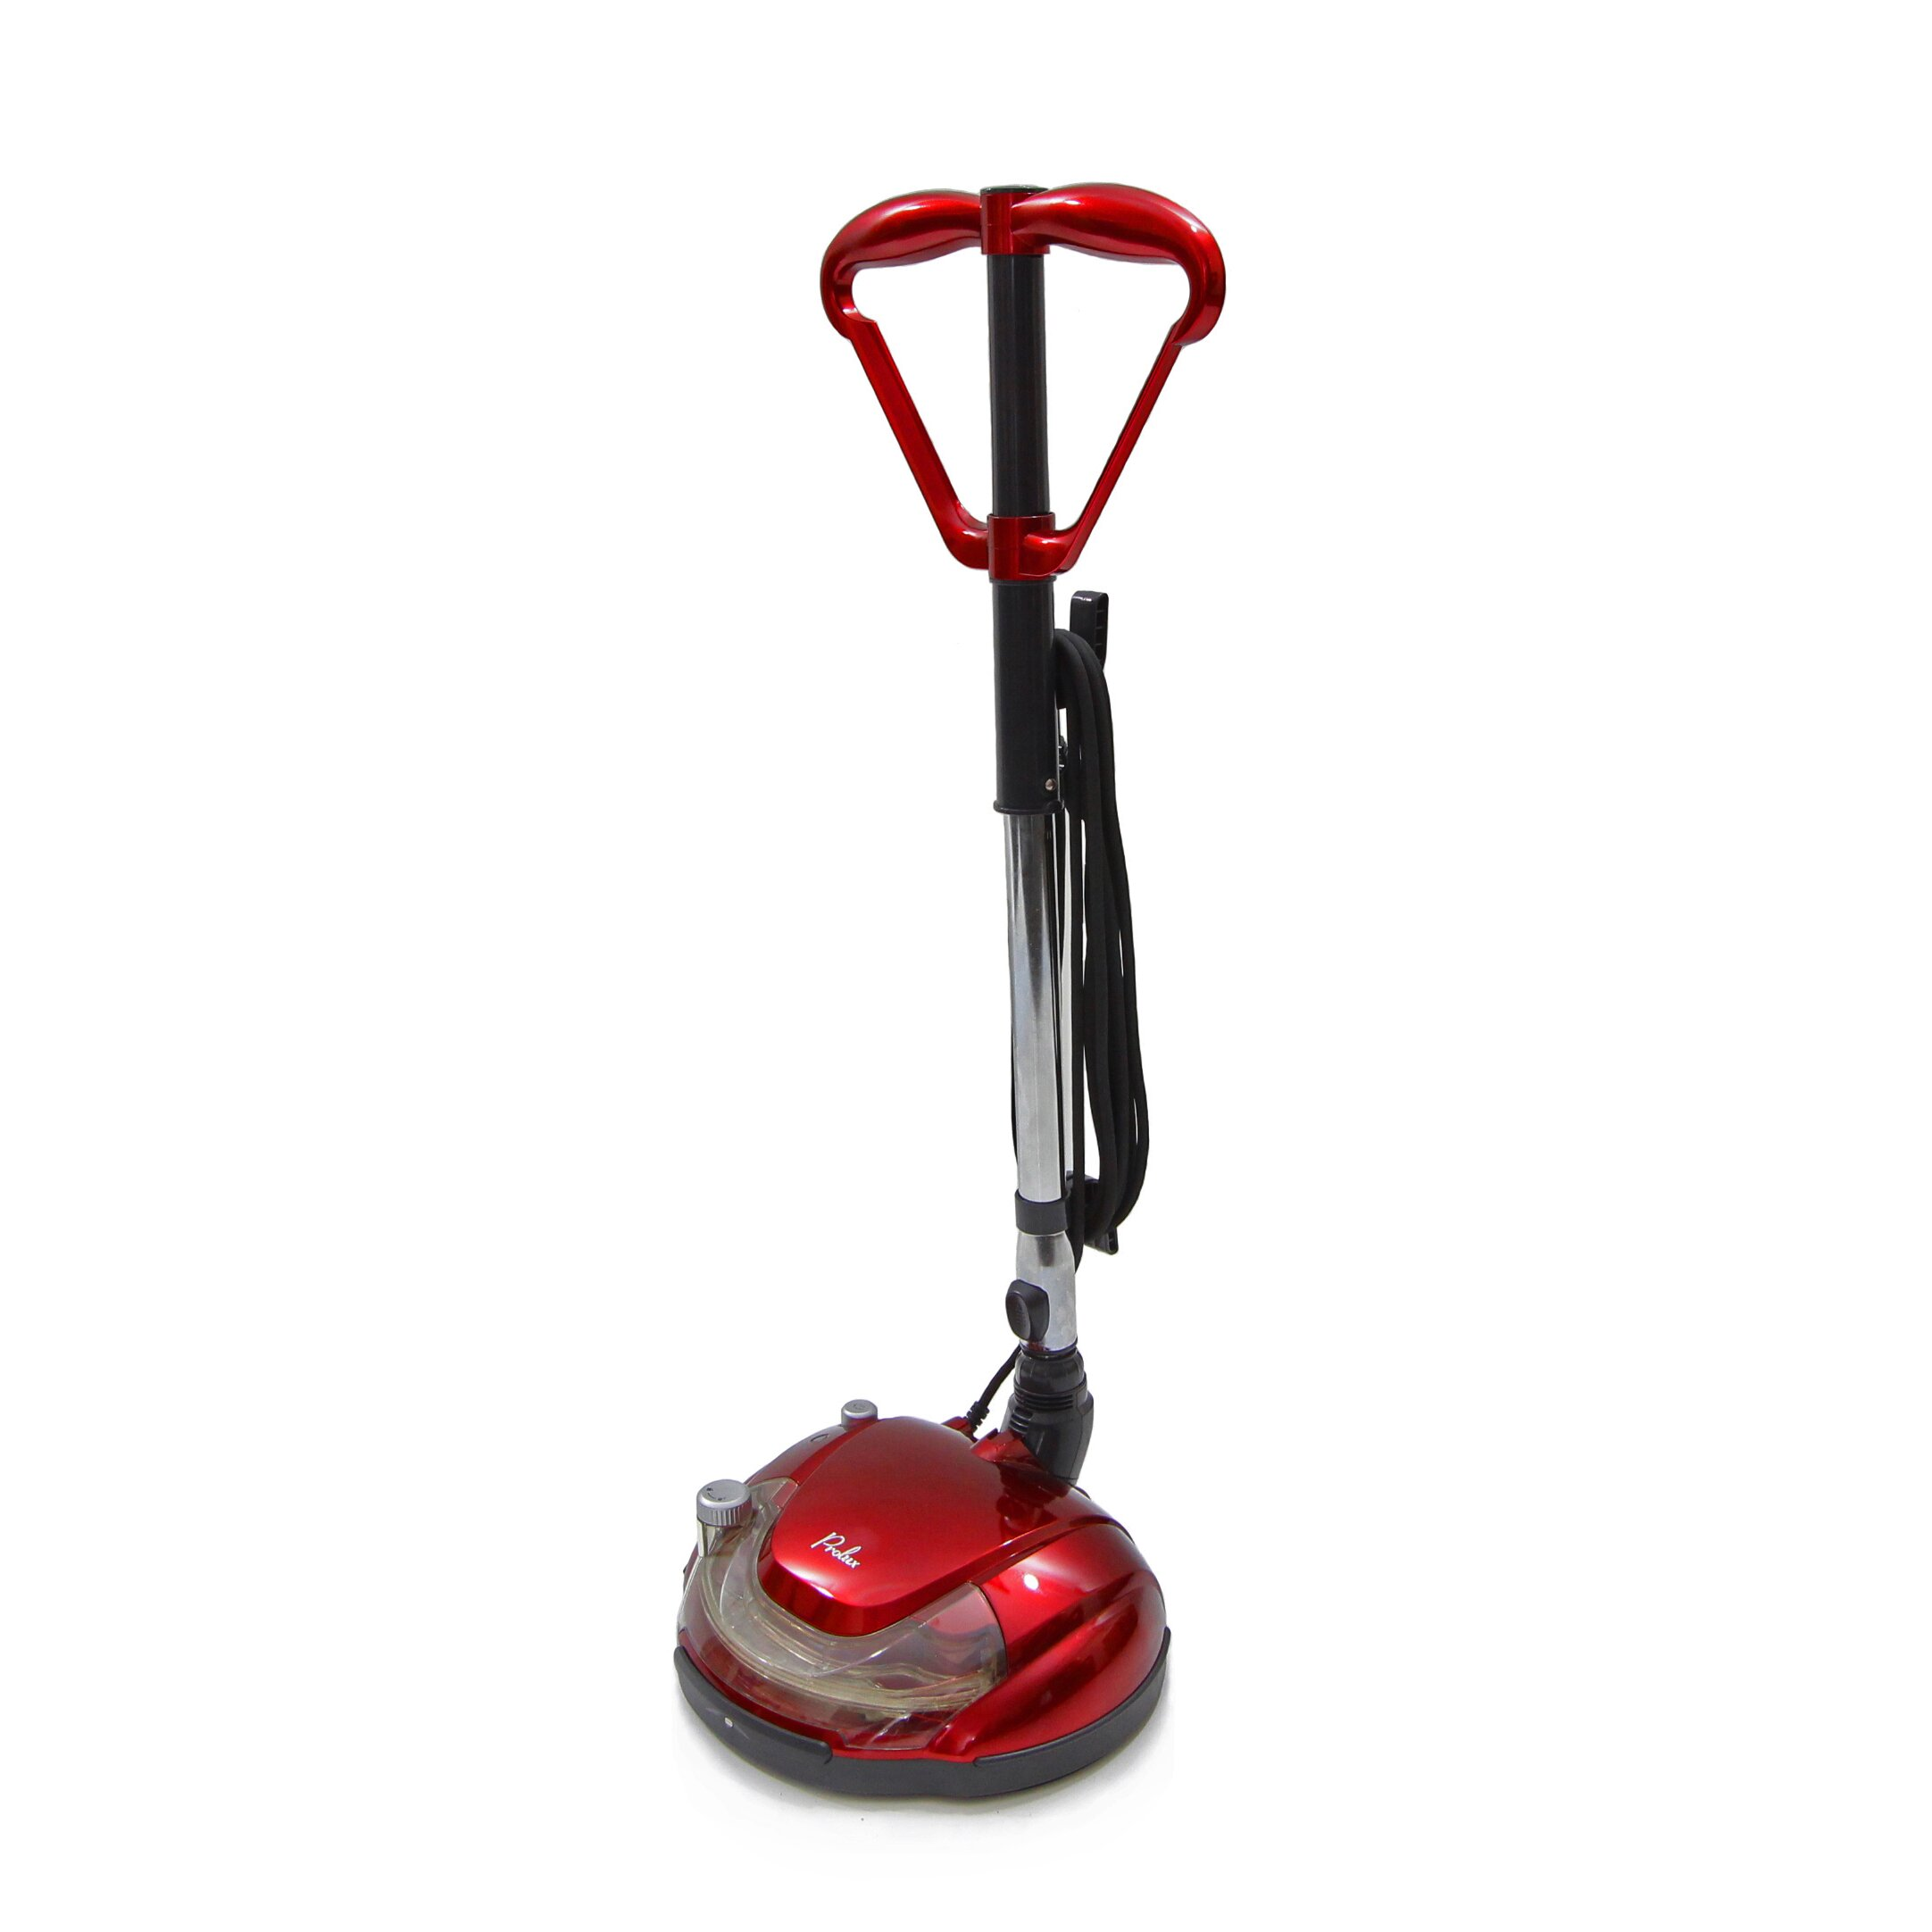 Electric floor cleaner for wood floors images home flooring design electric floor polisher wooden floors awesome floor polisher with simple prolux hard floor cleaner polisher buffer doublecrazyfo Image collections